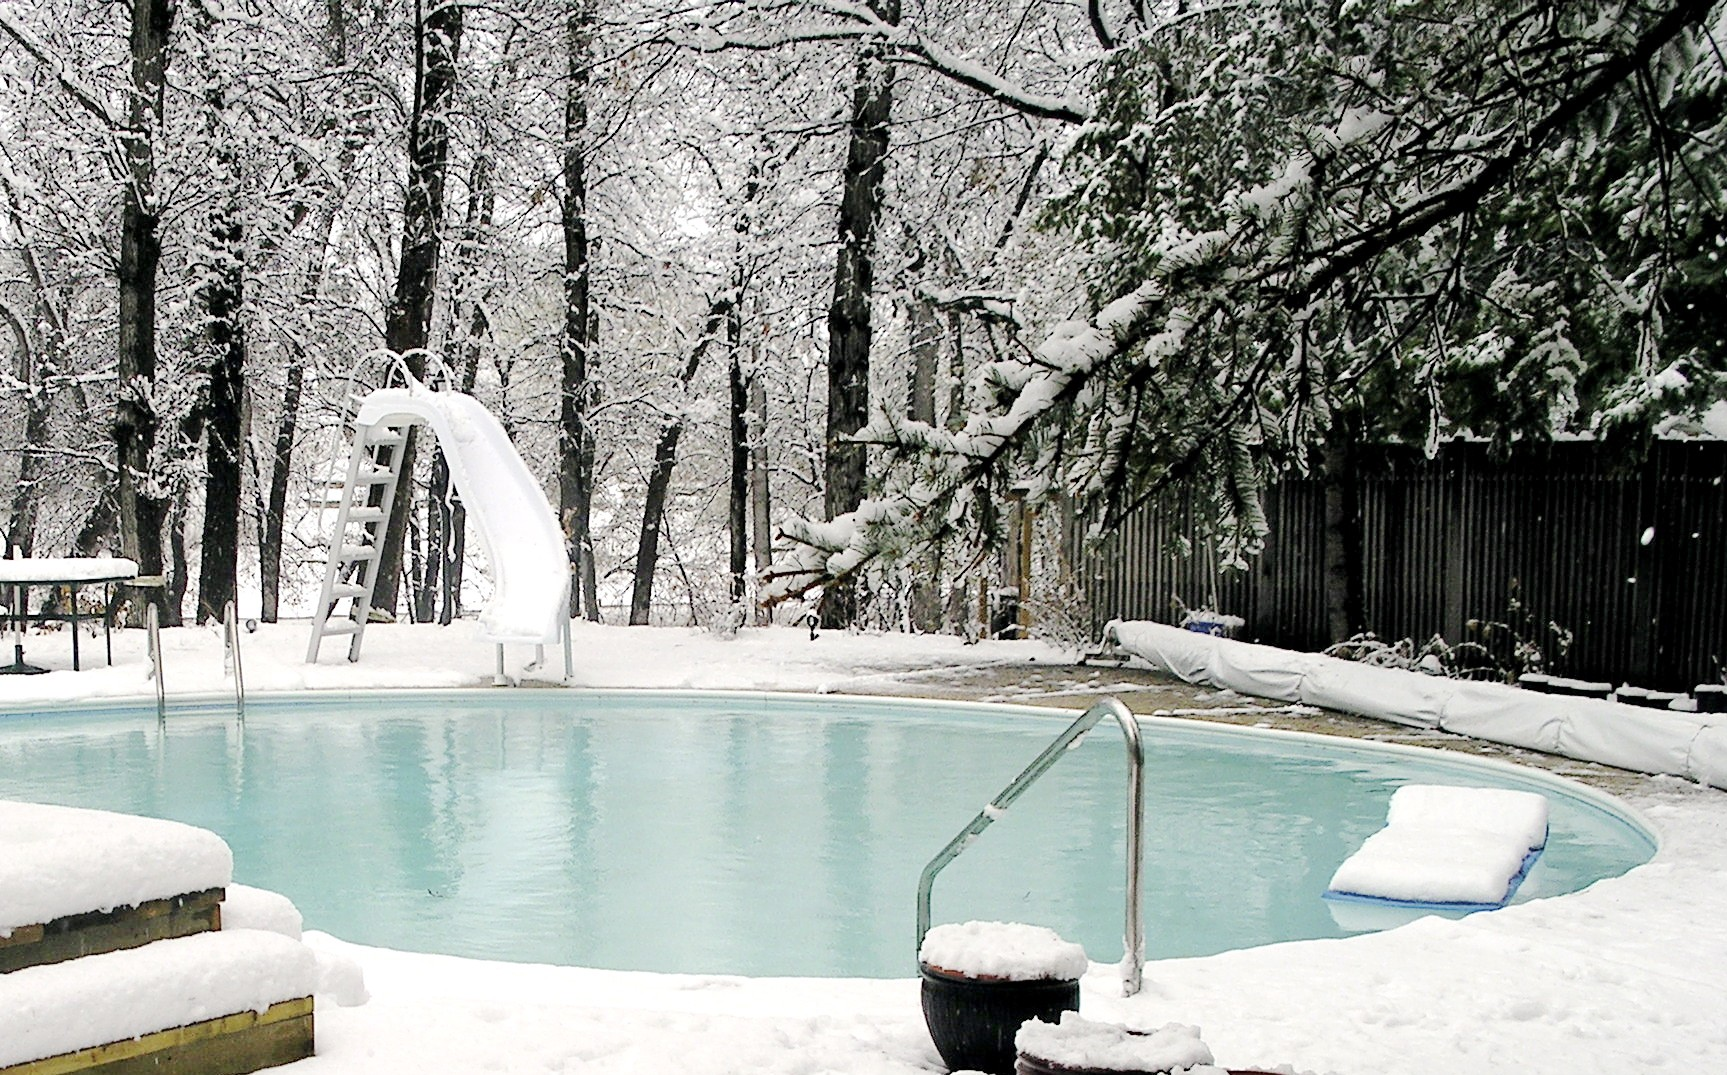 Winterize with swimming pool safety covers poolarama - Swimming pool safety covers inground ...